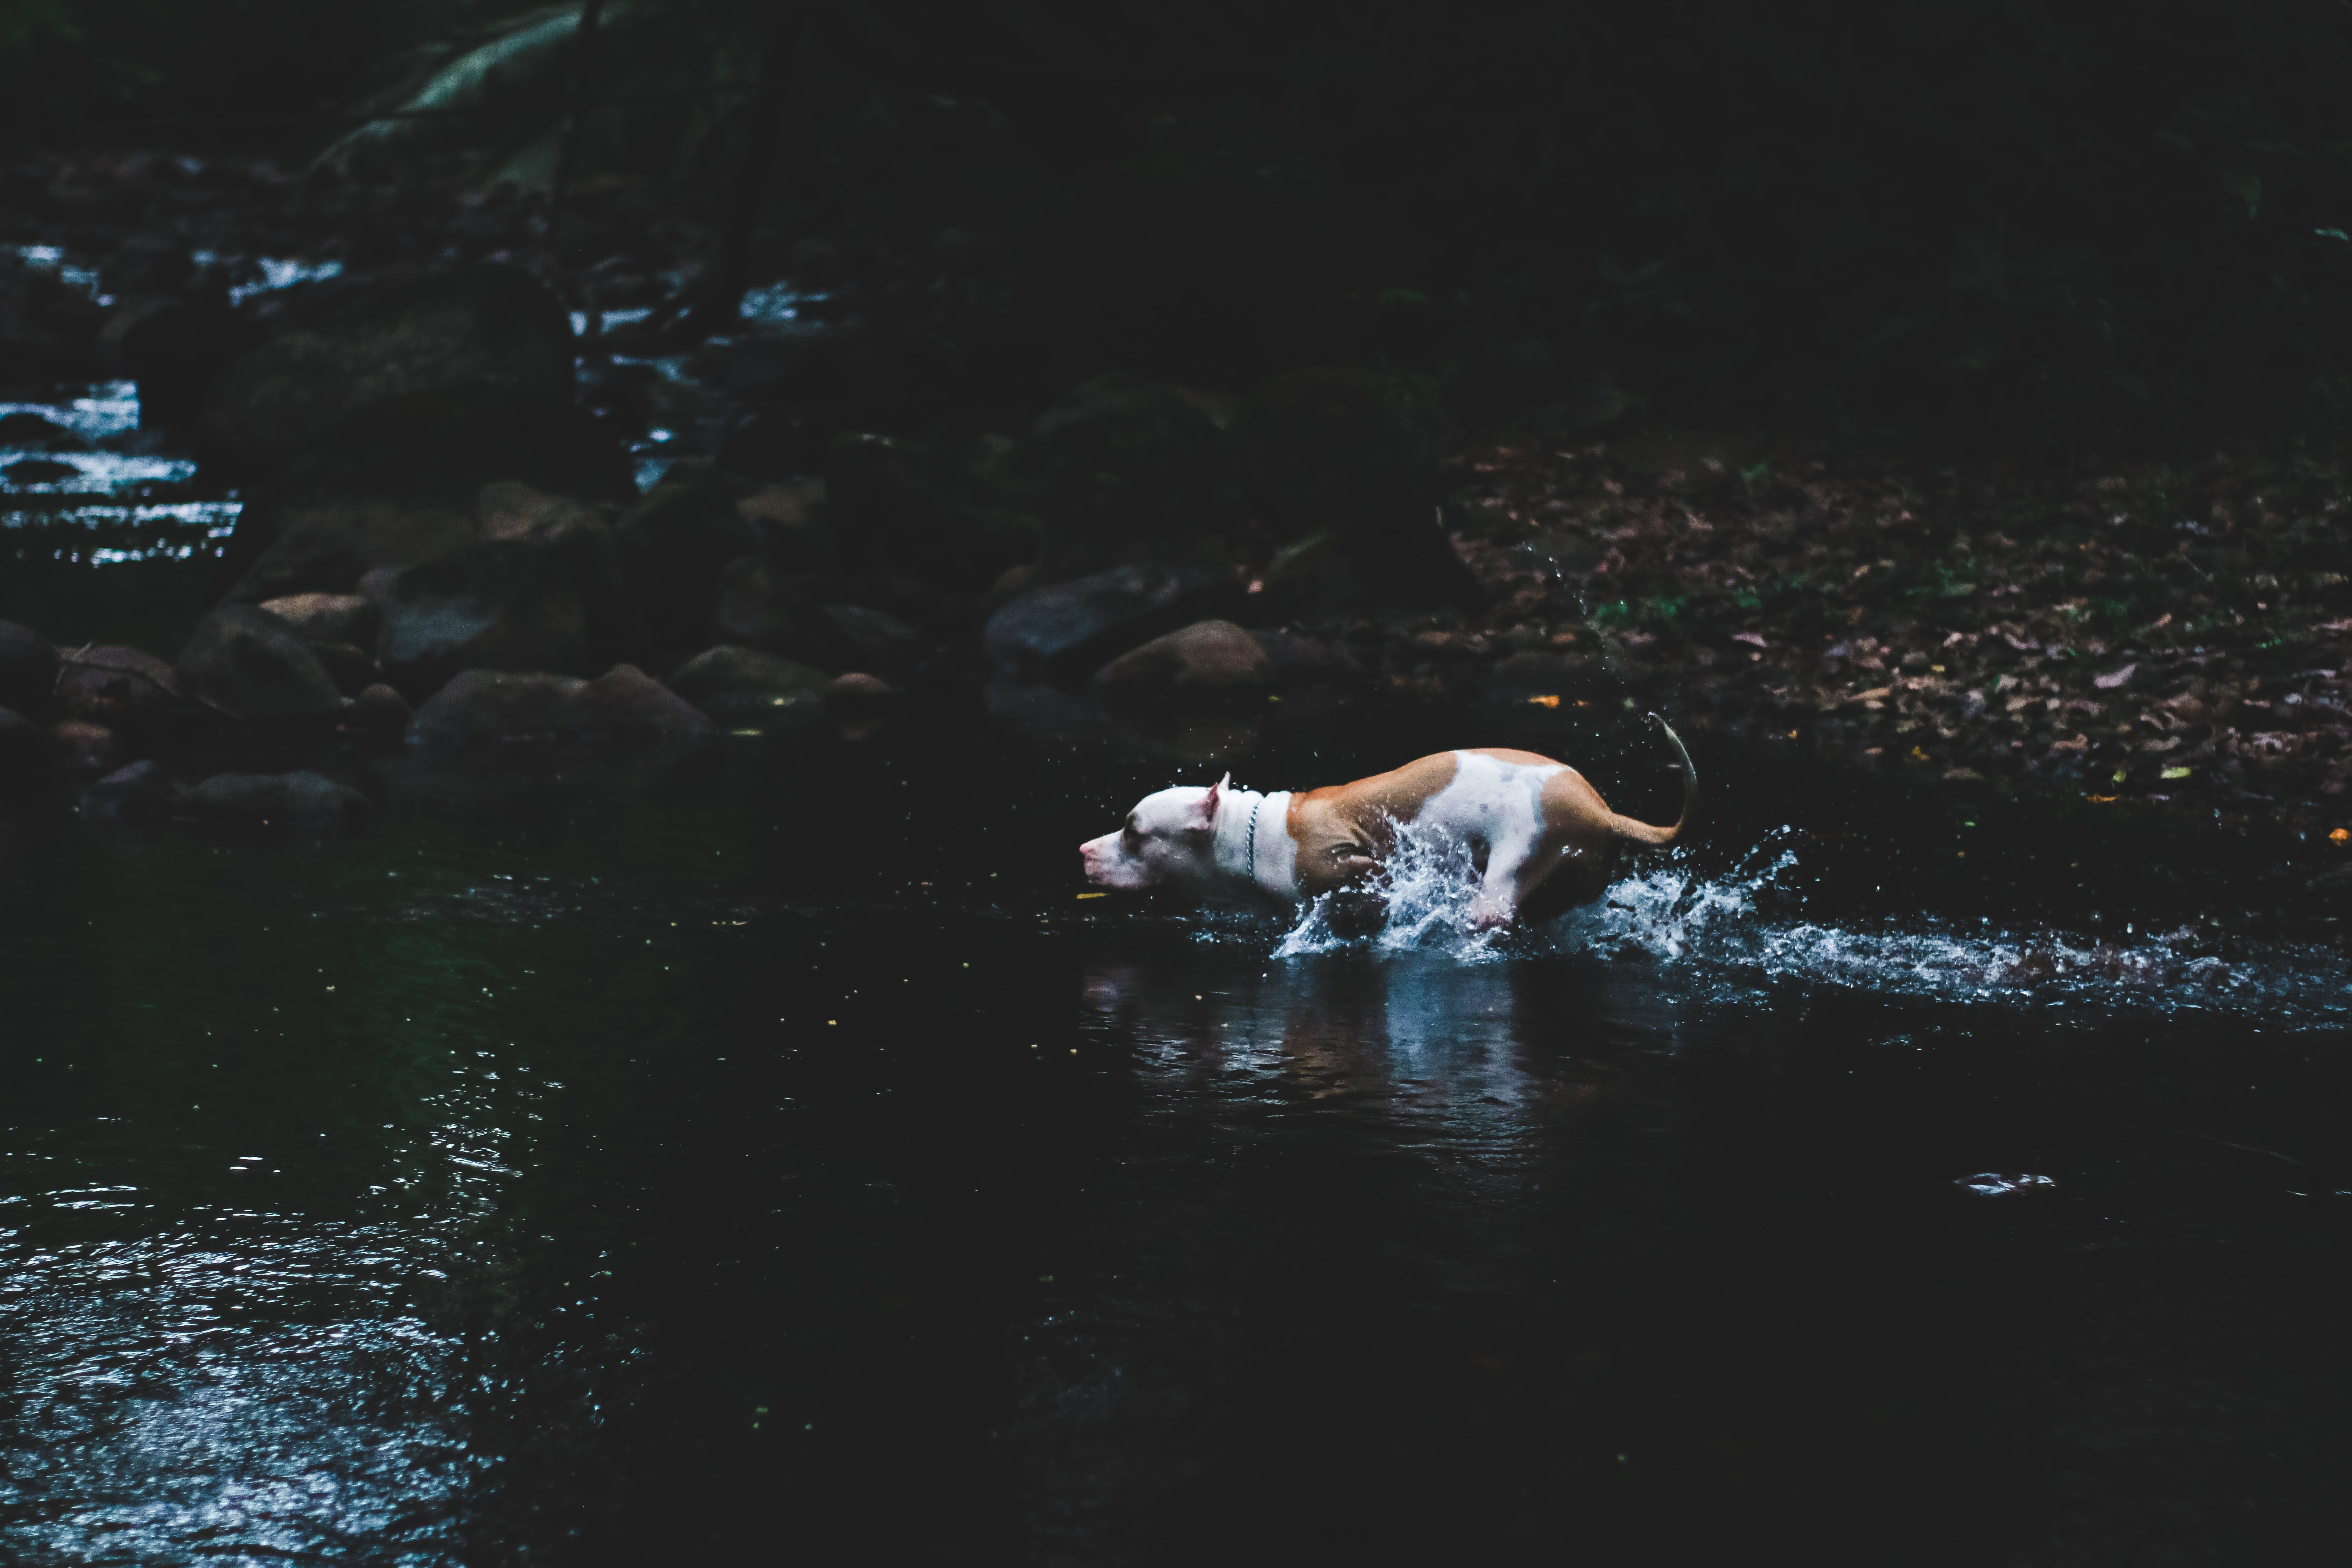 white and brown American Pit bull terrier on body of water during daytime